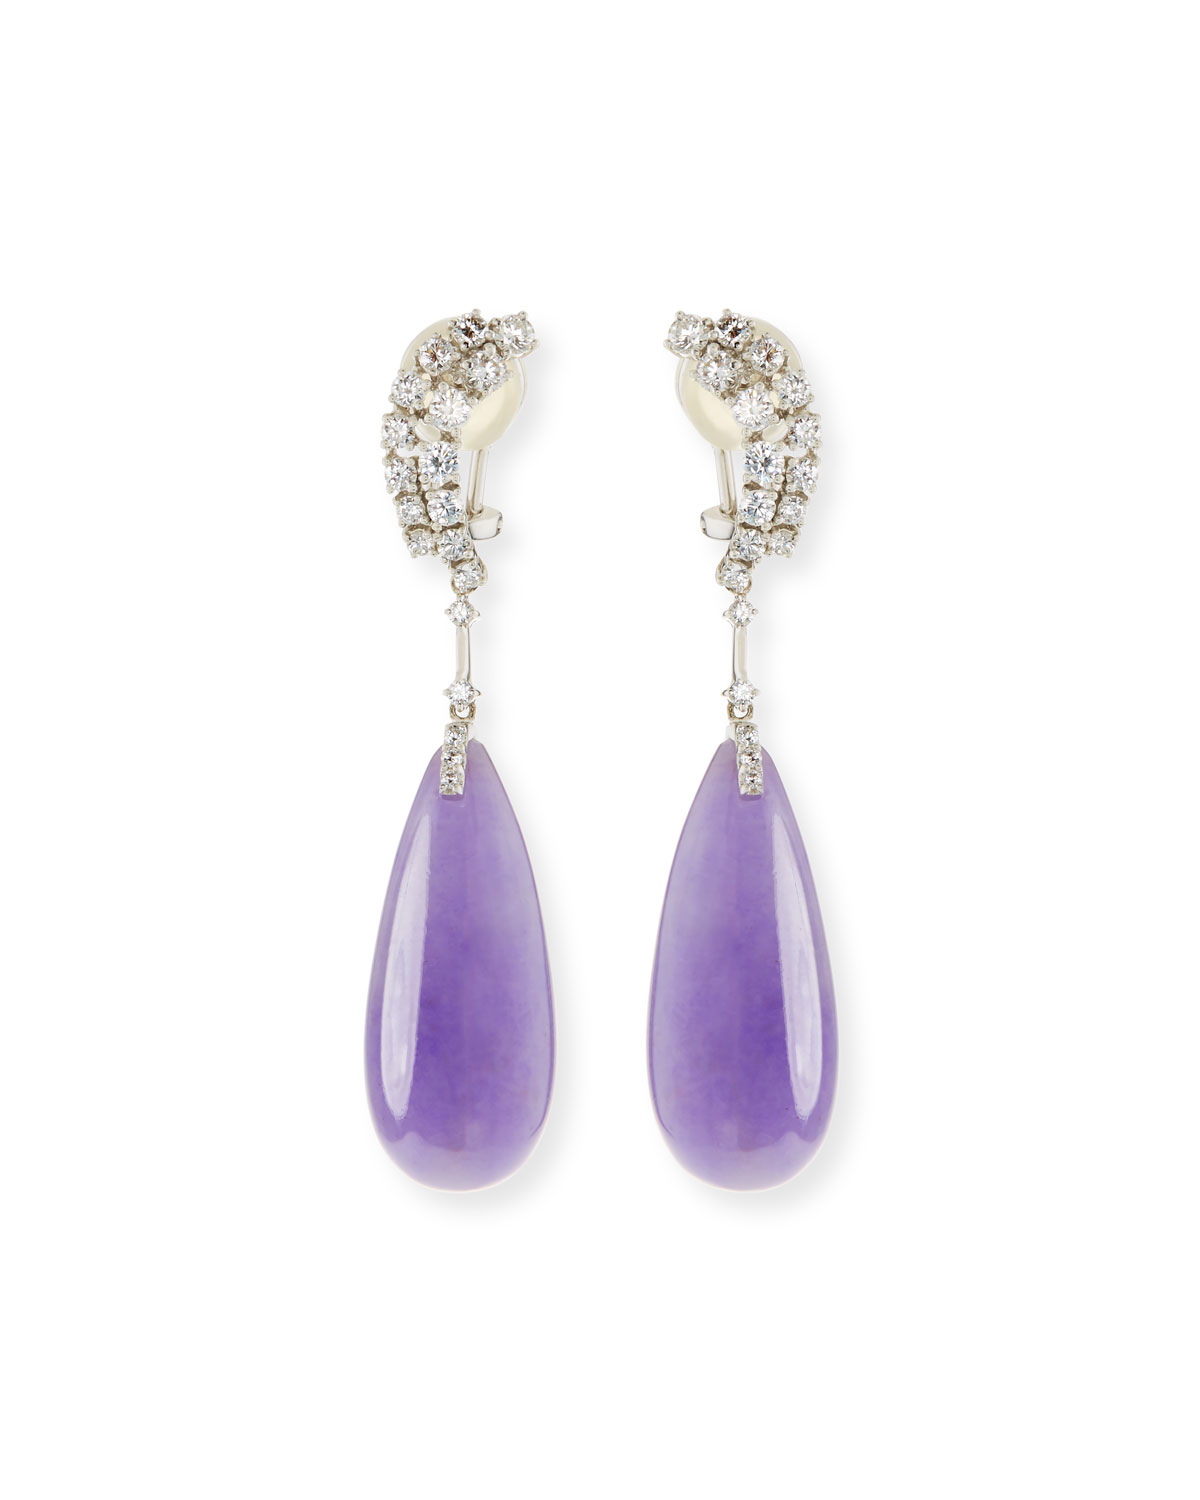 DAVID C.A. LIN 18K LAVENDER JADEITE TEARDROP EARRINGS